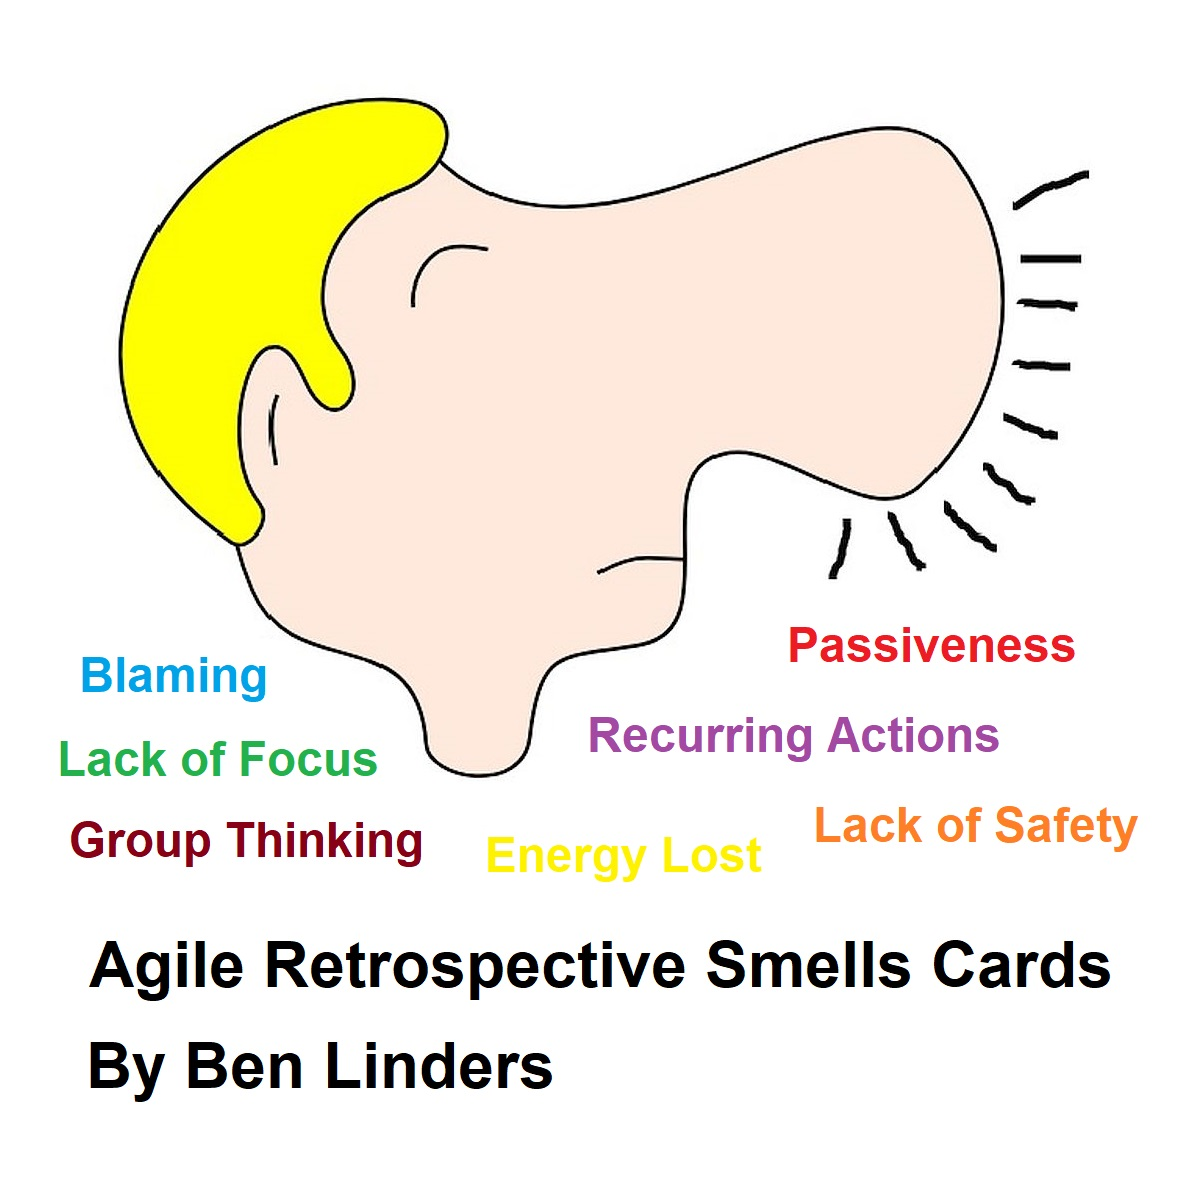 Agile Retrospective Smells Cards Released